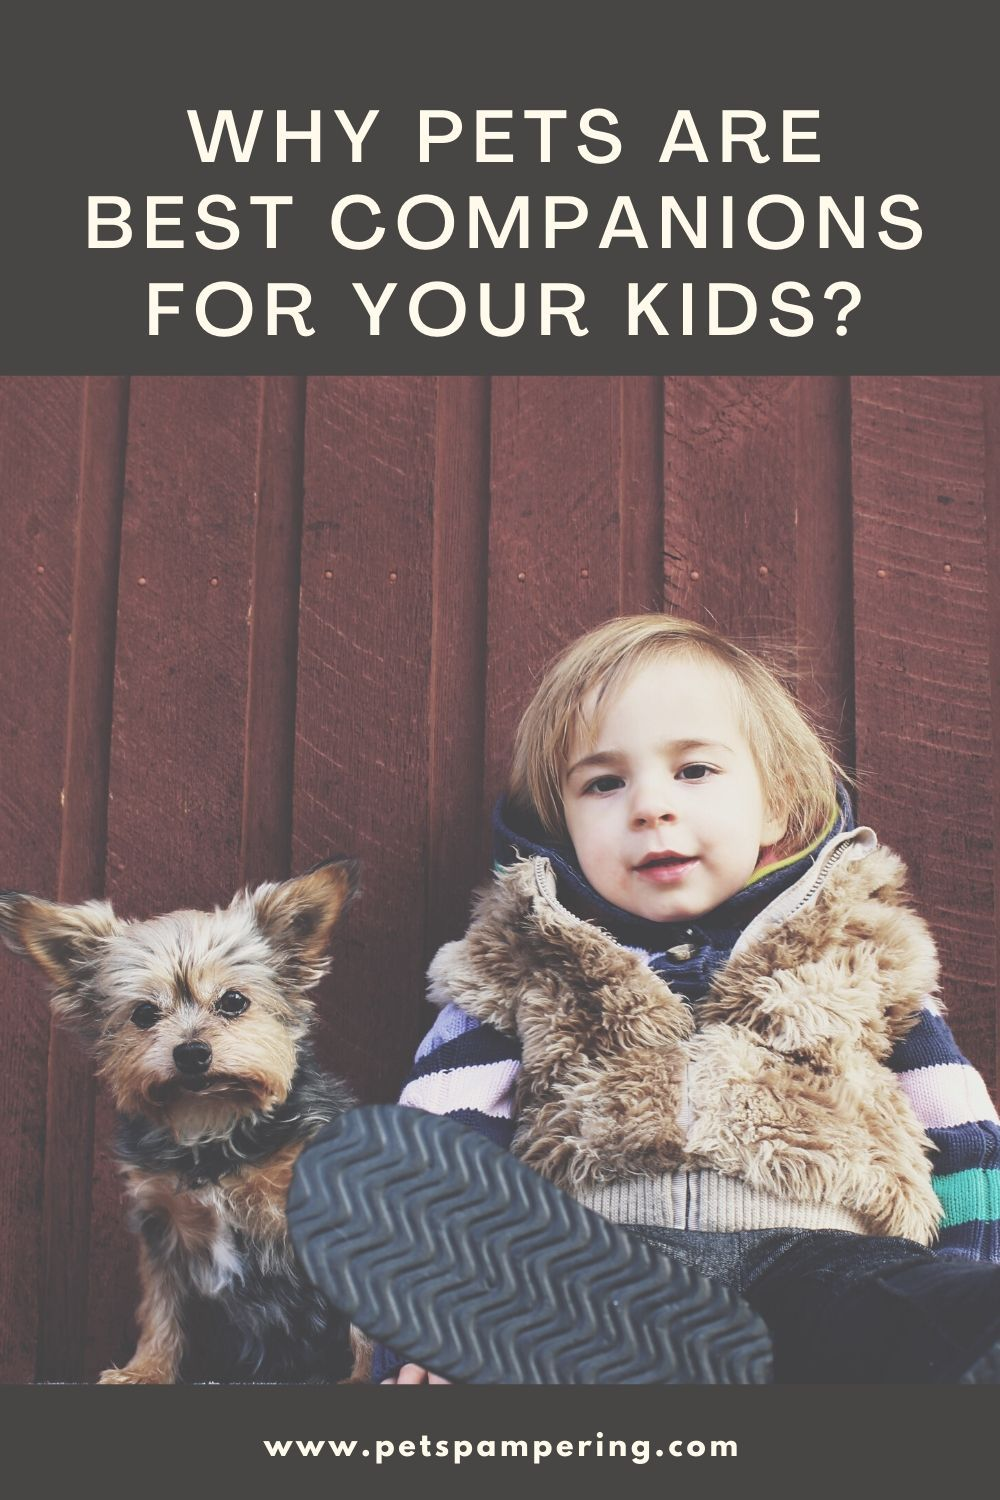 Why Pets Are Best Companions For Your Kids? Kids And Pets. Nothing compares to the joy of coming home to a loyal and friendly companion. The unconditional love of pets is much more than the company. Pets may also decrease levels of stress, improve heart health, and also help children in developing their social skills.  #pet #dogs #cute #animals #animal #petstagram #dog #puppy #cats #doglover #dogsofinstagram #cat #love #adorable #petsagram #puppies #dogstagram #photooftheday #petsofinstagram